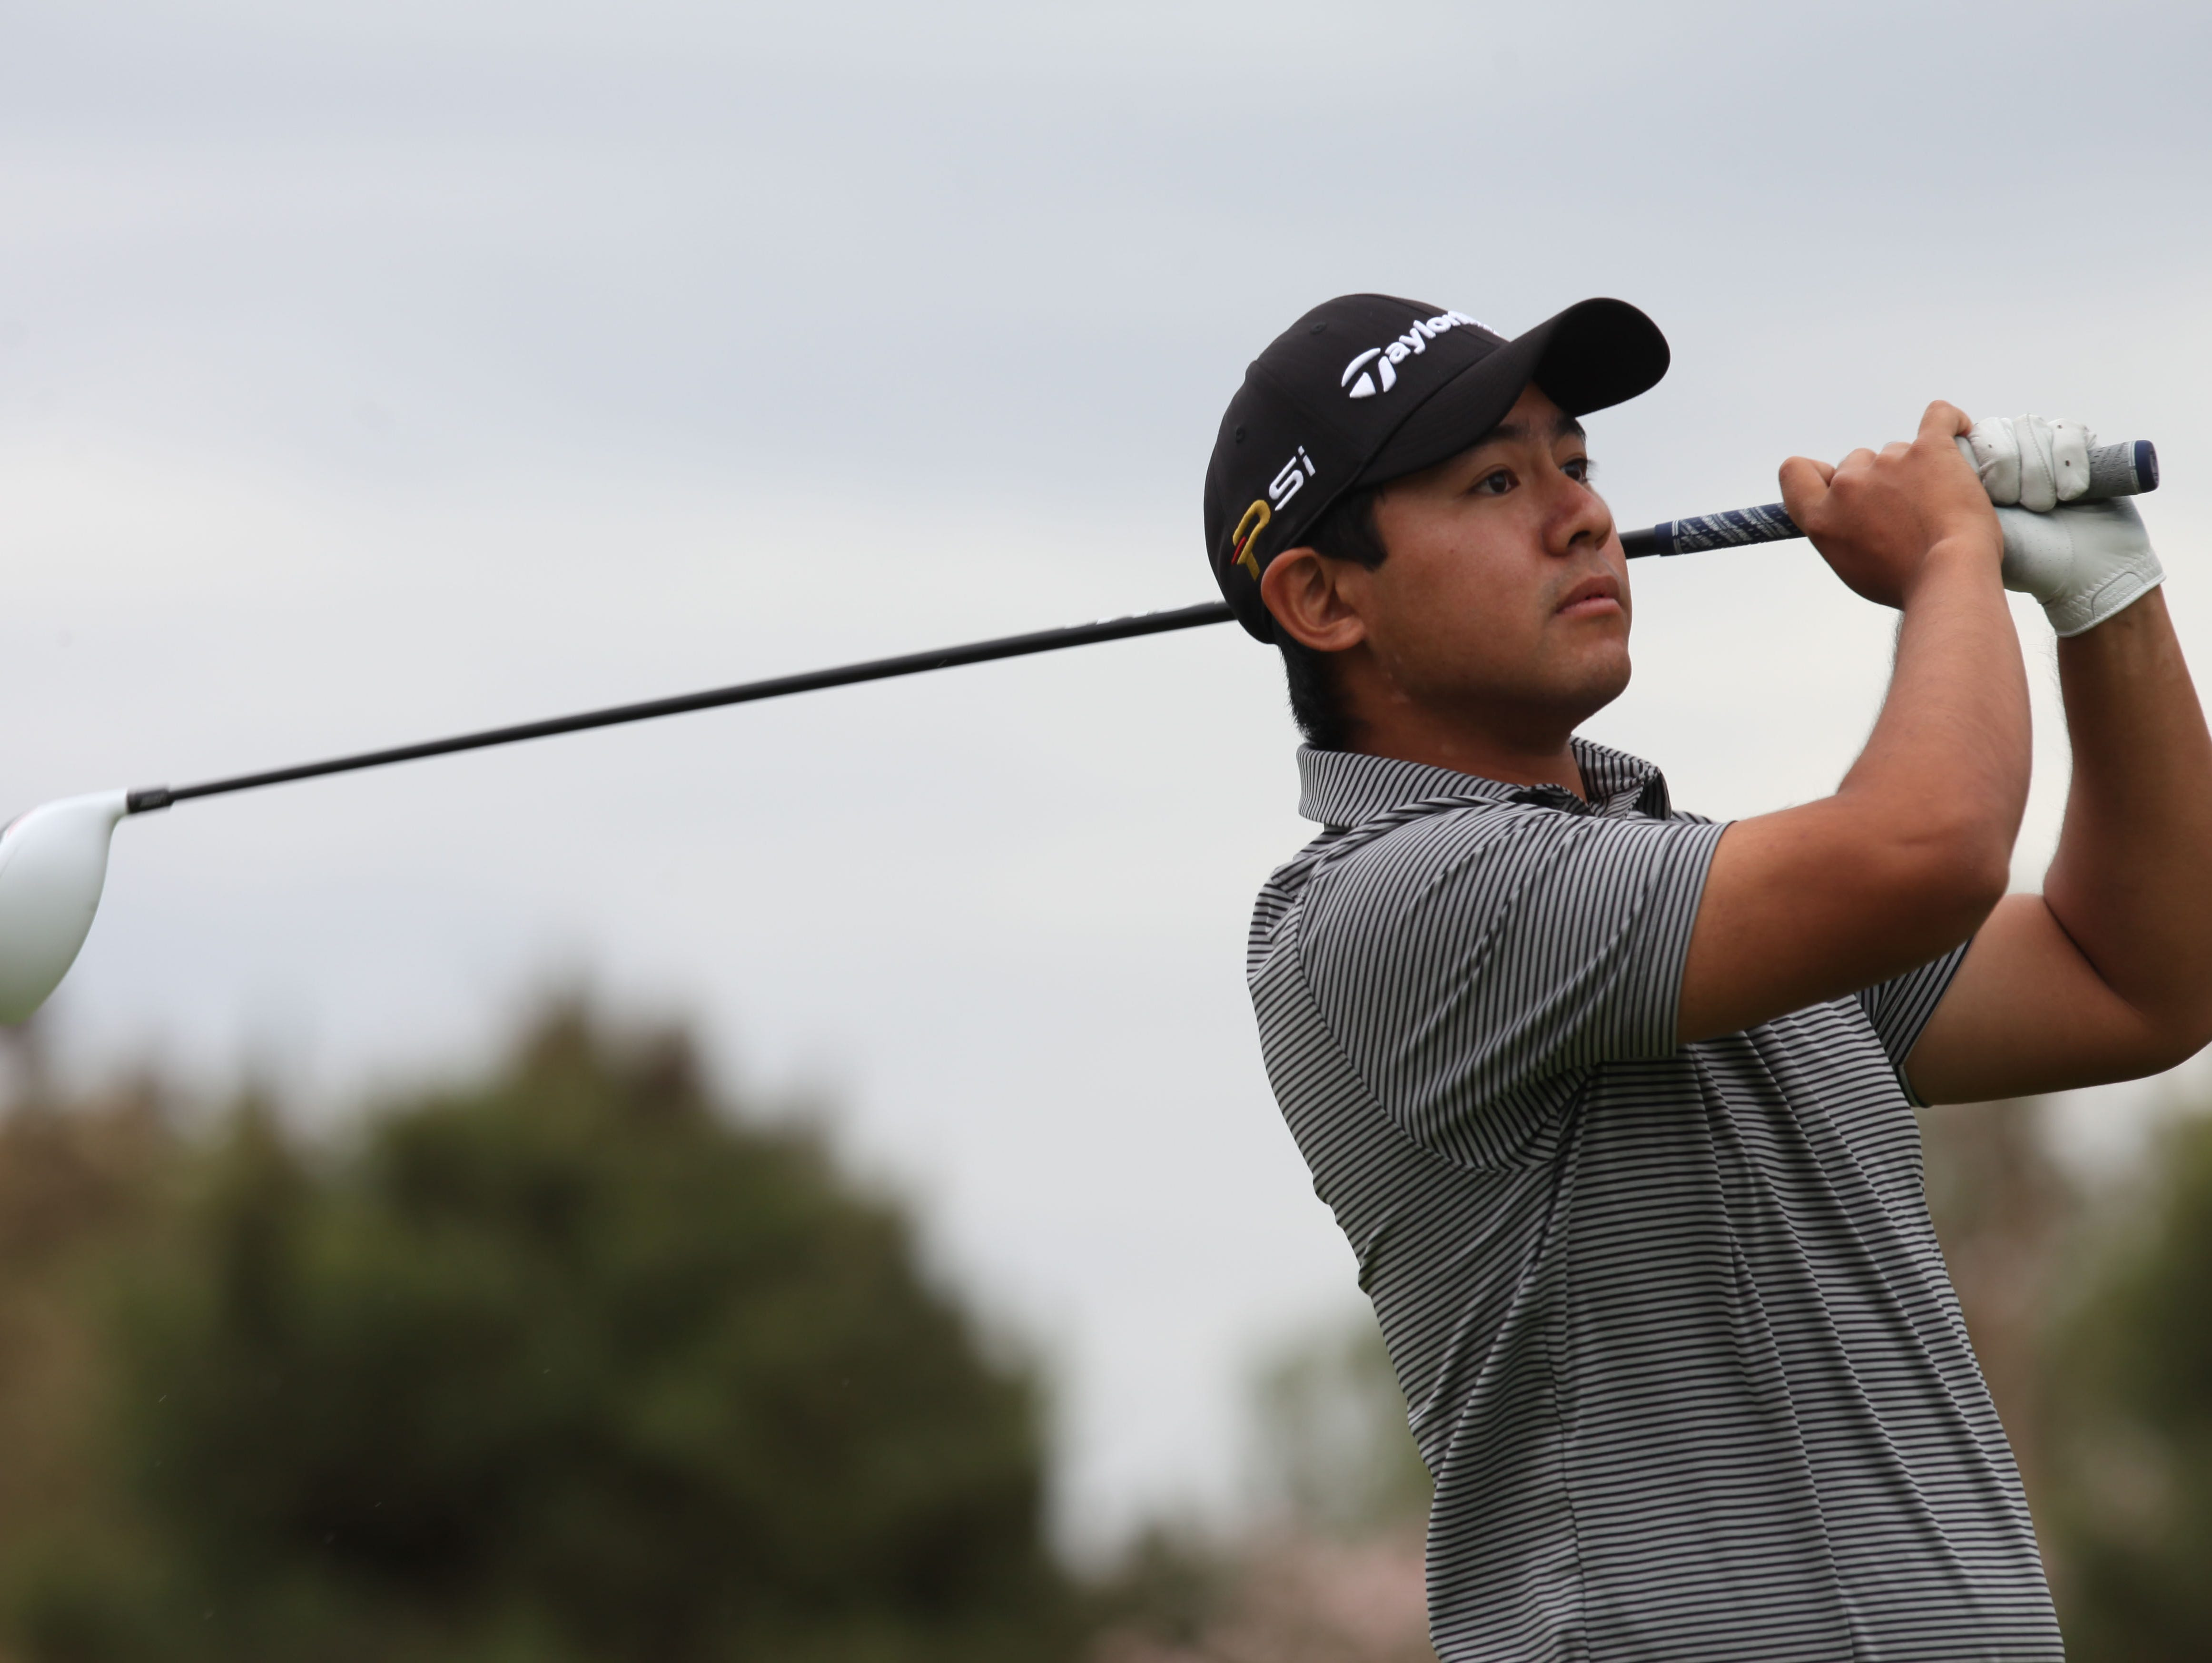 Shawn Tsai, of Xavier Preparatory, tees off on the first tee at the Classic Club in Palm Desert during a match against Palm Desert High School on April 7, 2016.